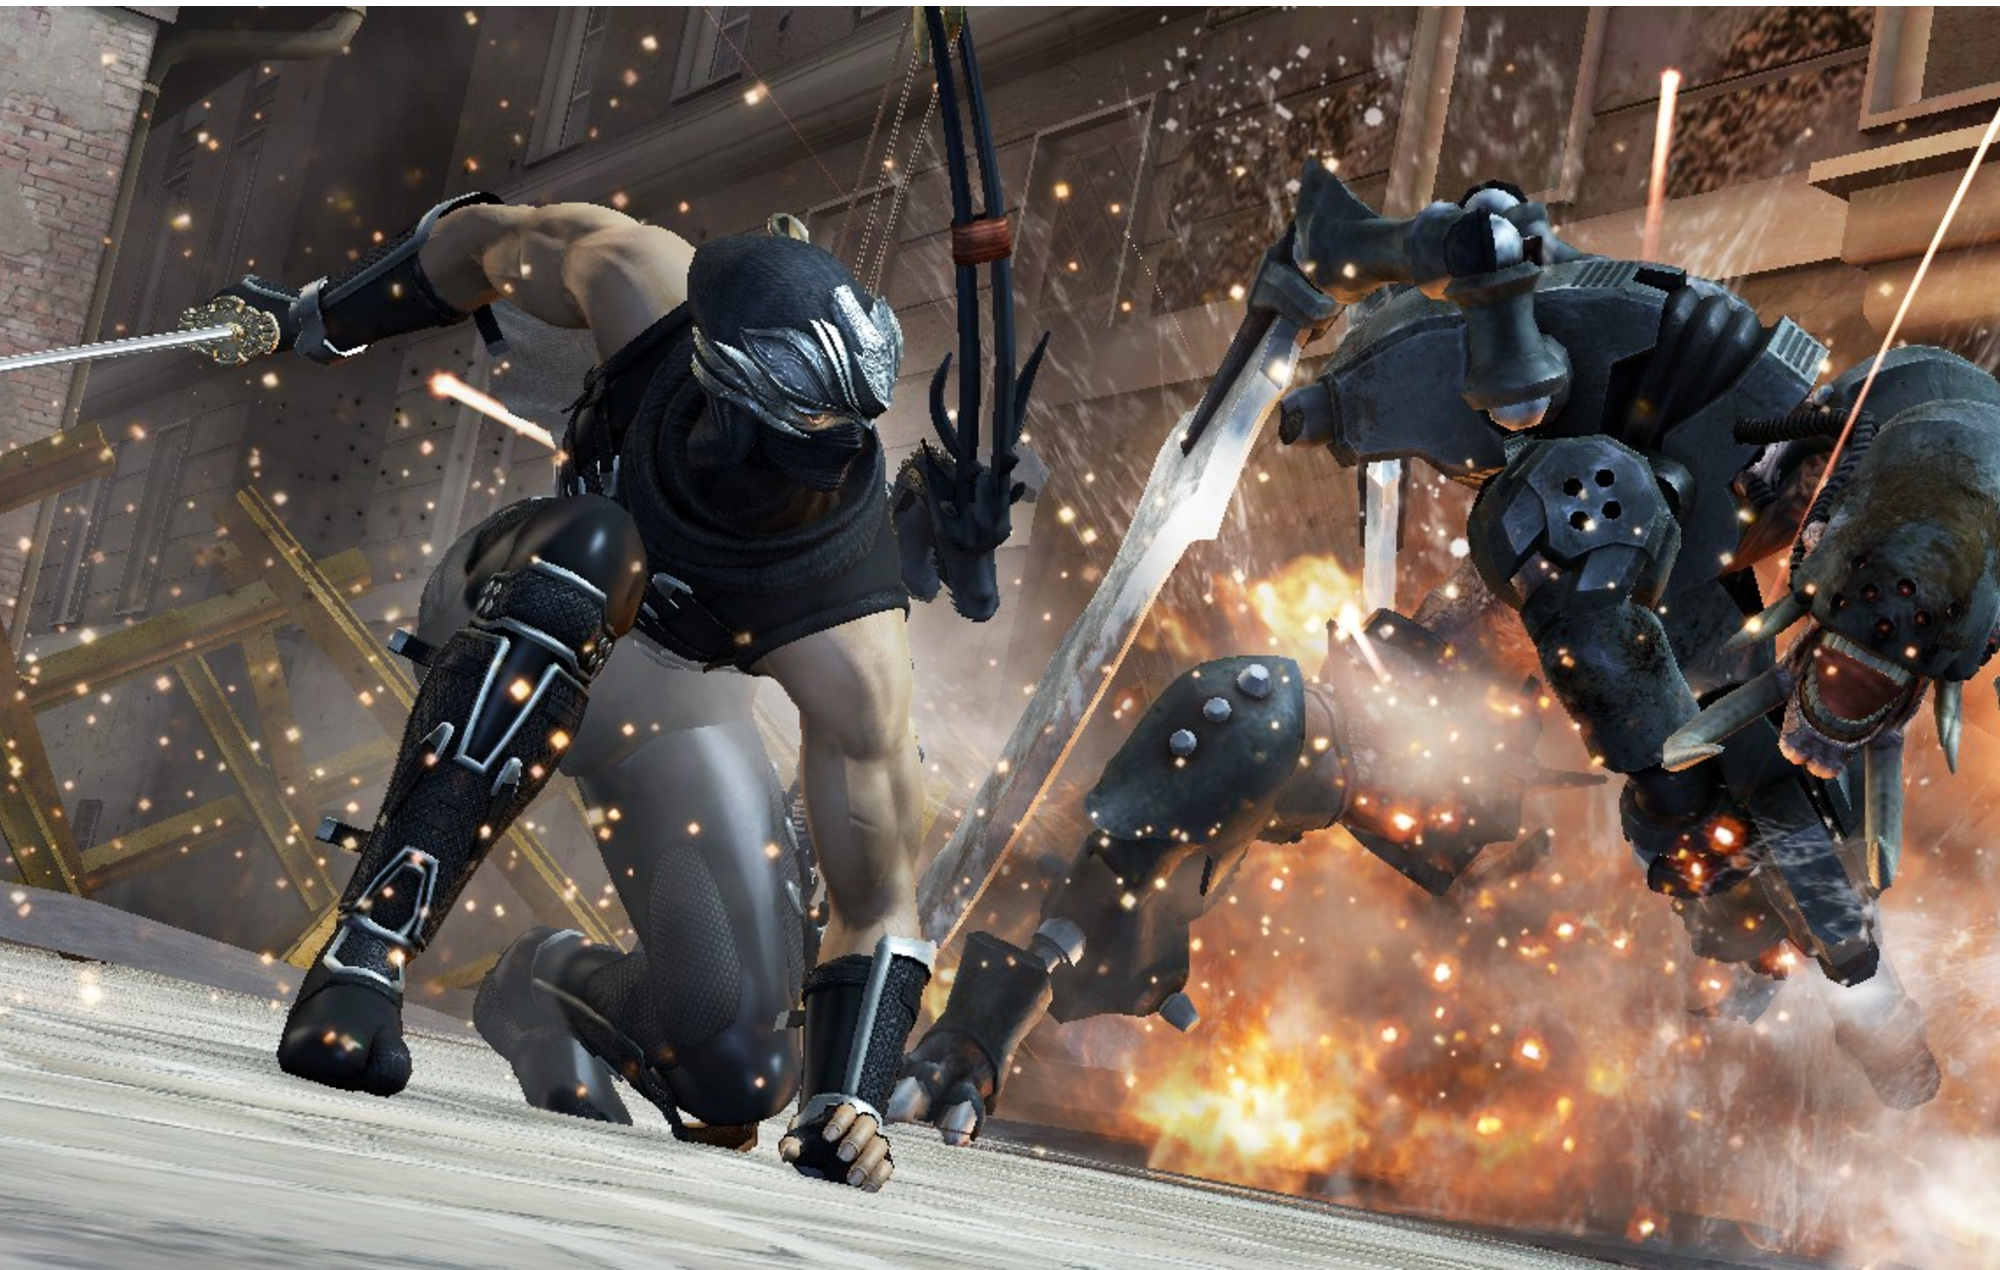 'Ninja Gaiden: Master Collection' set to arrive on Nintendo Switch this summer